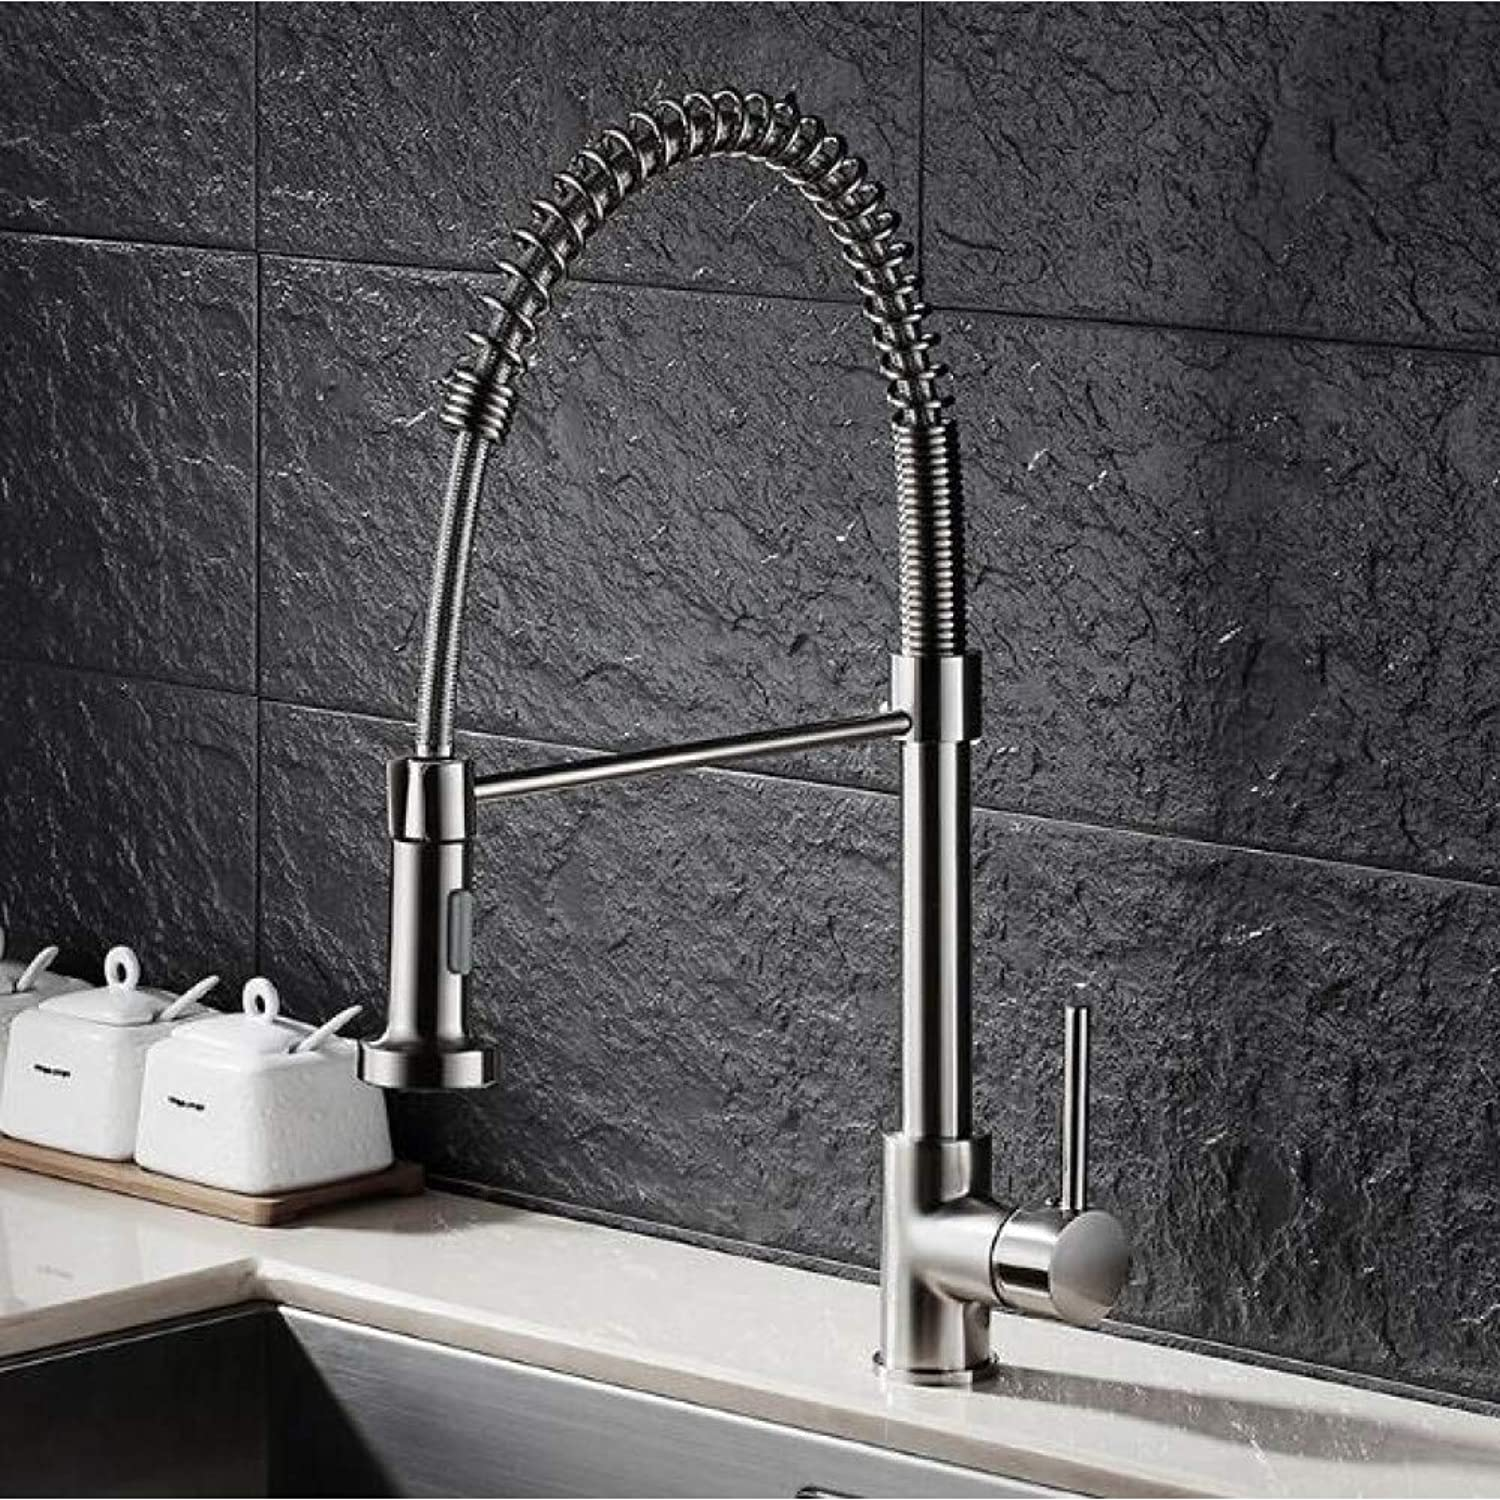 YHSGY Kitchen Taps New Kitchen Faucet Brushed Nickel Faucet Pull Out Torneira All Around redate Swivel 2-Function Water Outlet Mixer Tap